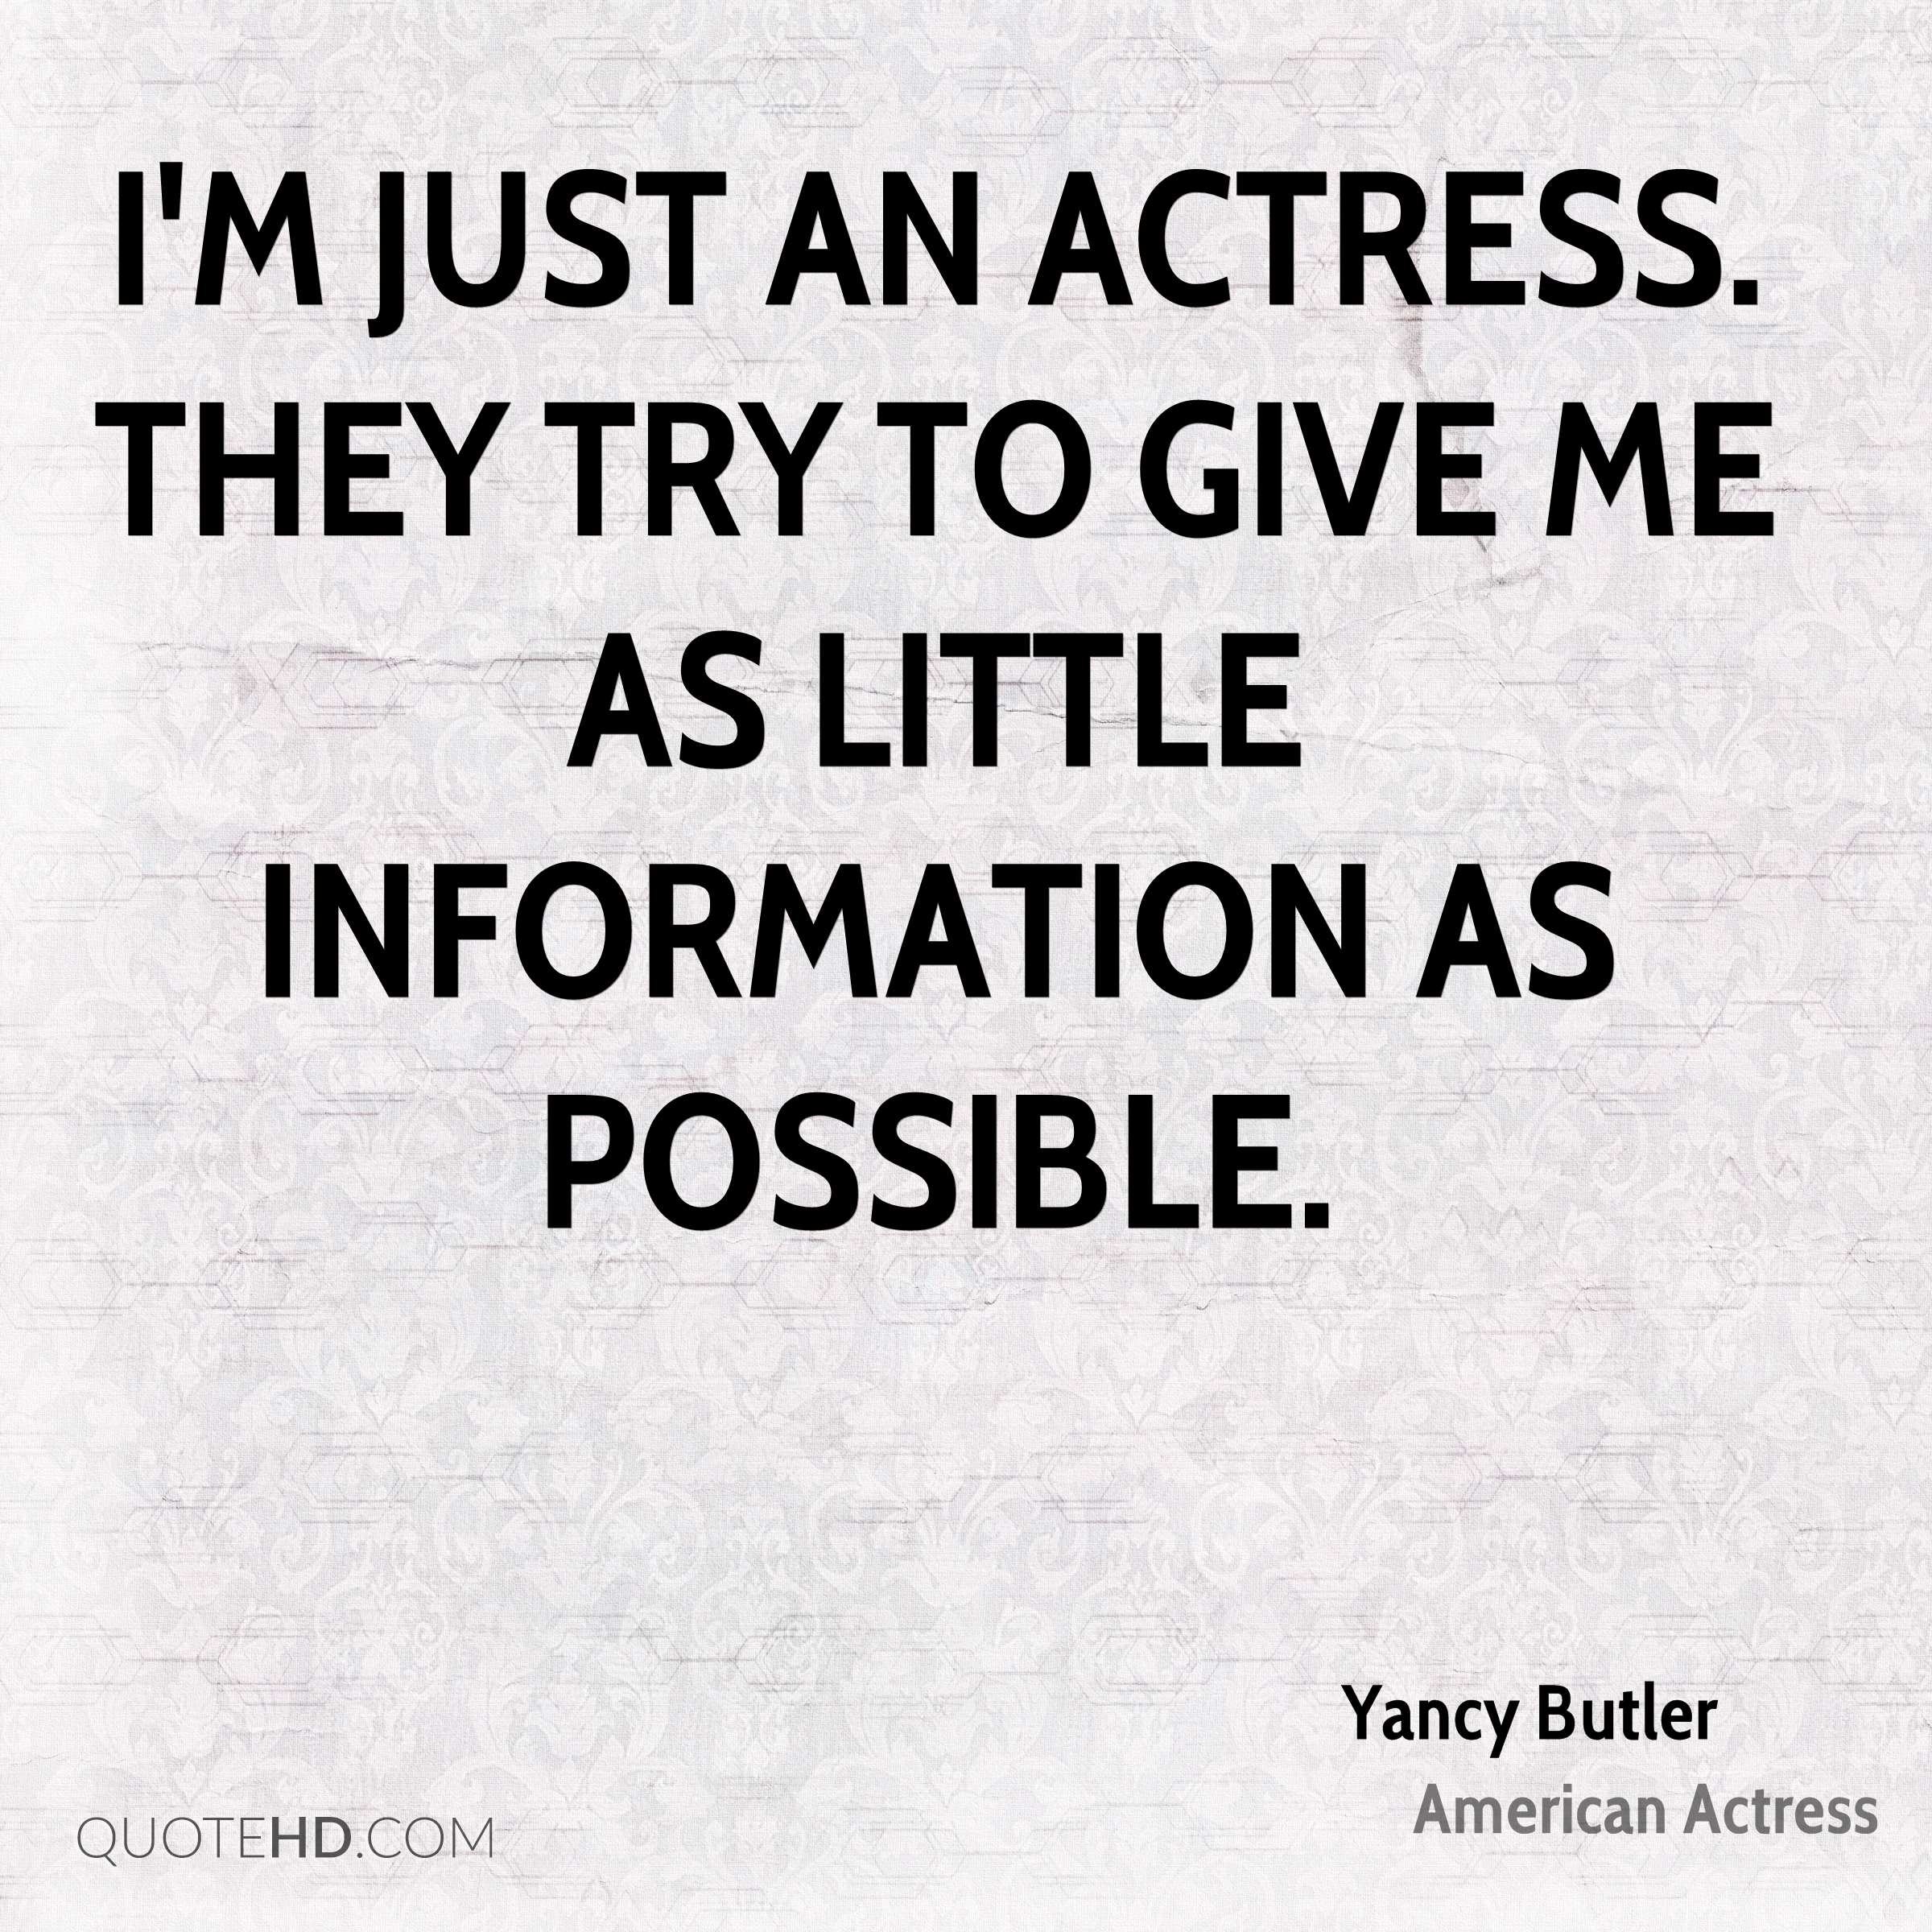 I'm just an actress. They try to give me as little information as possible.